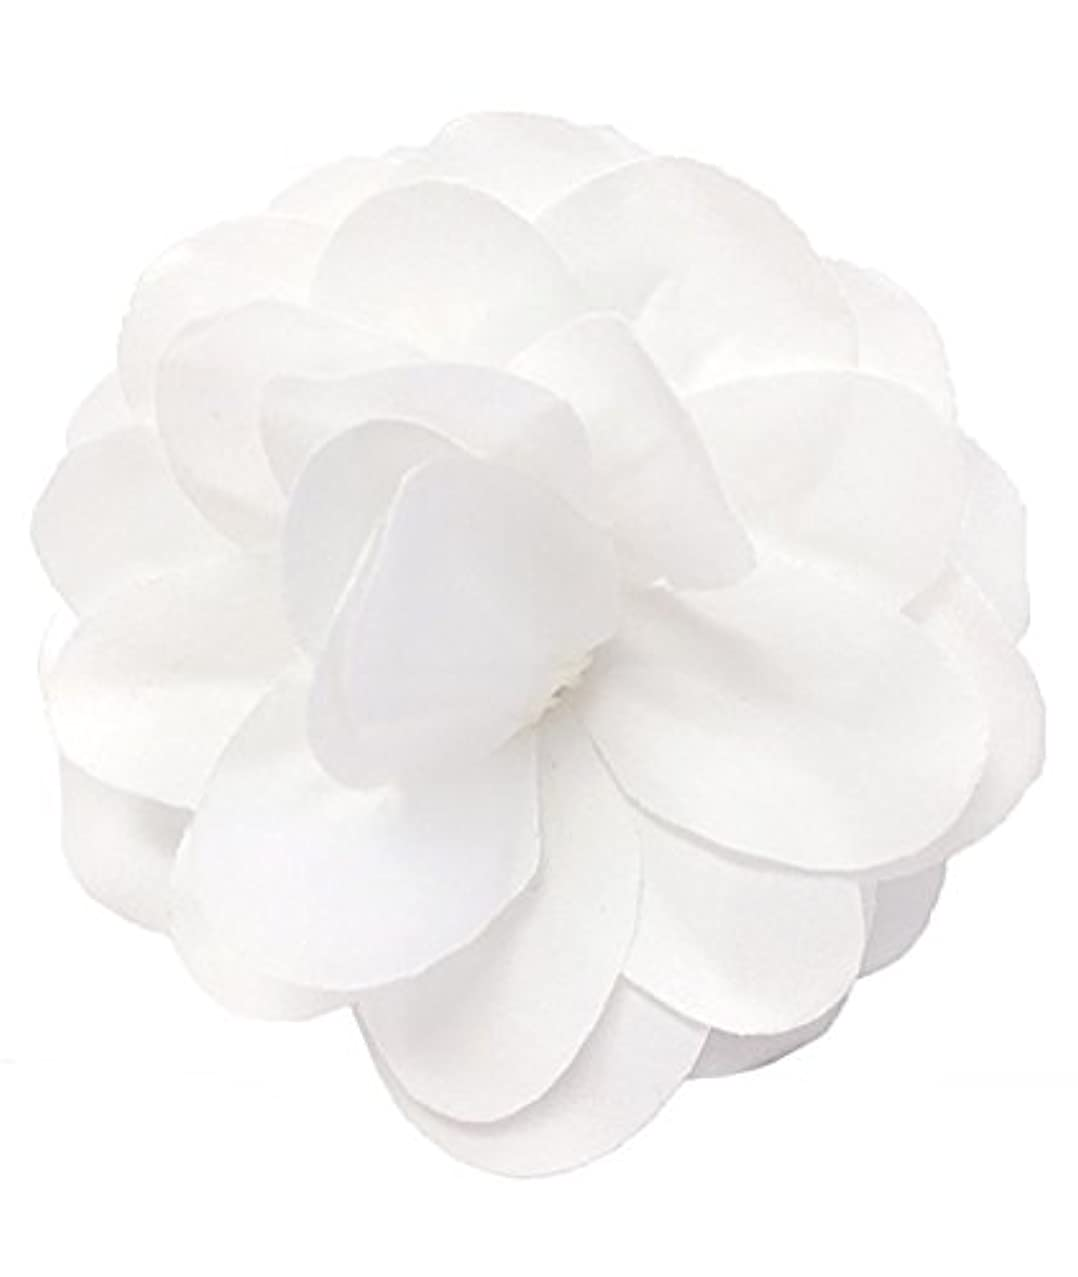 Cuteque International SOPHISICATED Light Weight Velvet Wedding Gardenia 3-Packed, White